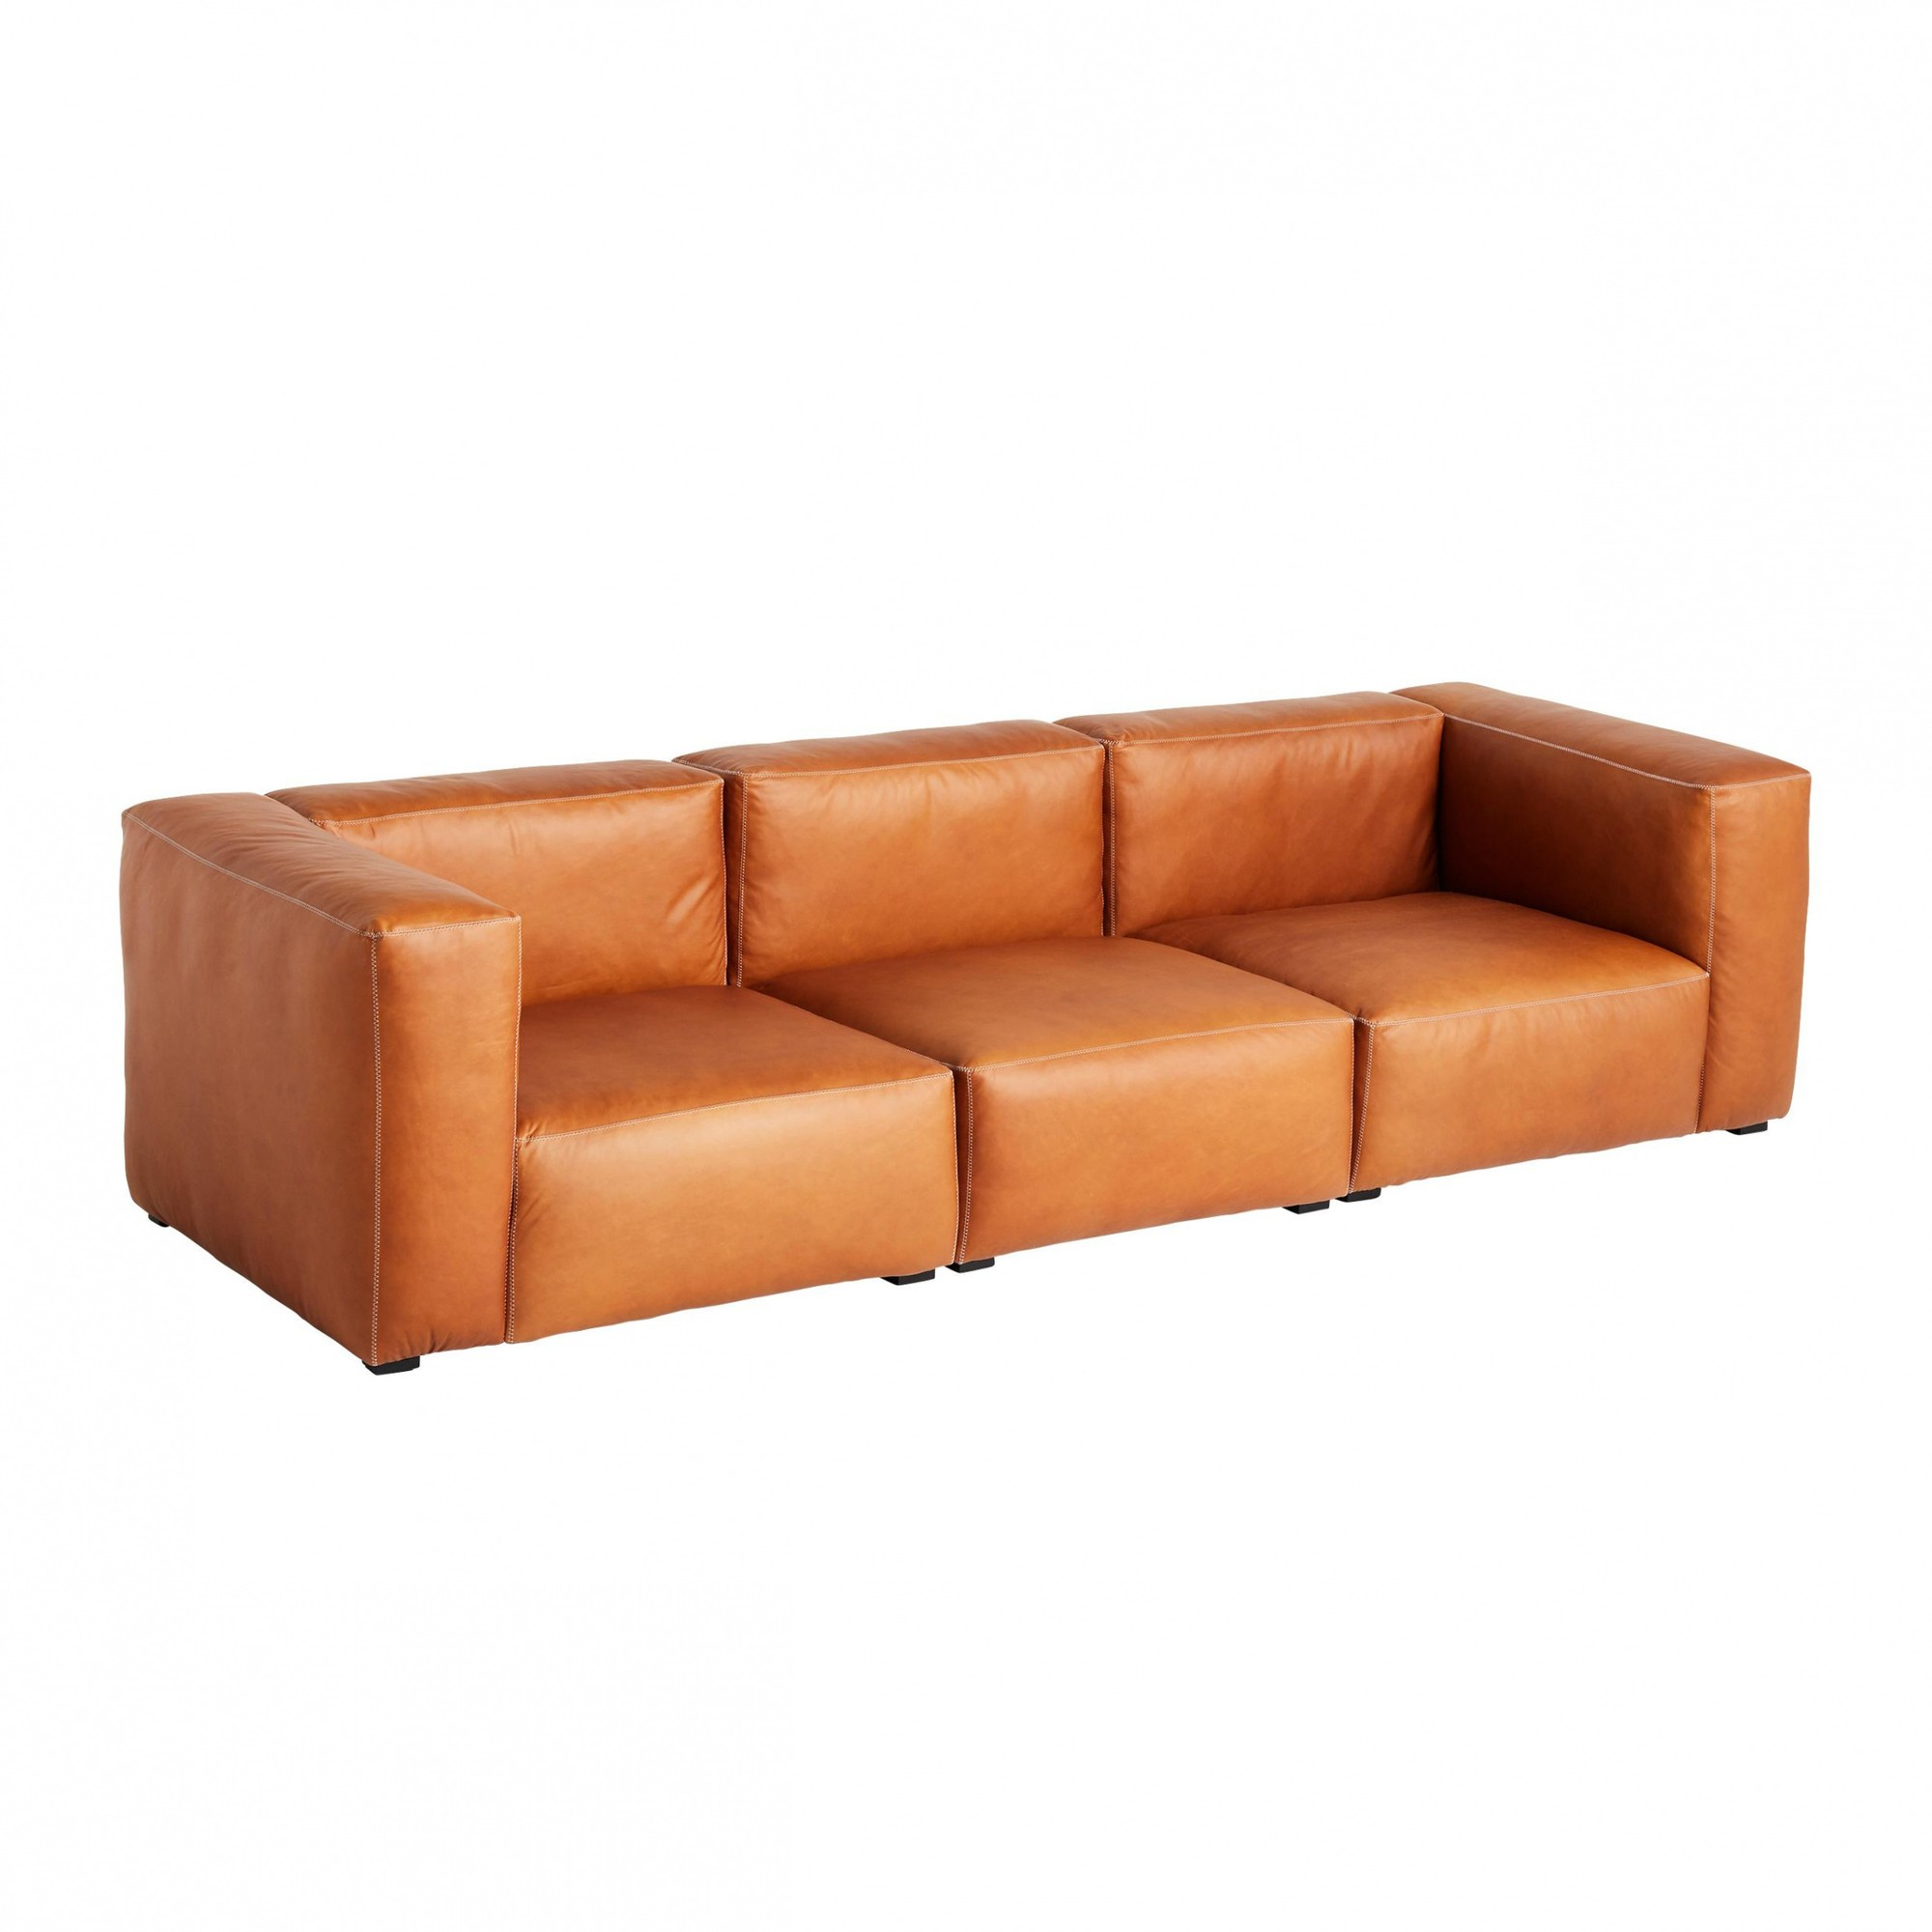 HAY Mags Soft 3 Seater Leather Sofa 268.5x95.5cm | AmbienteDirect